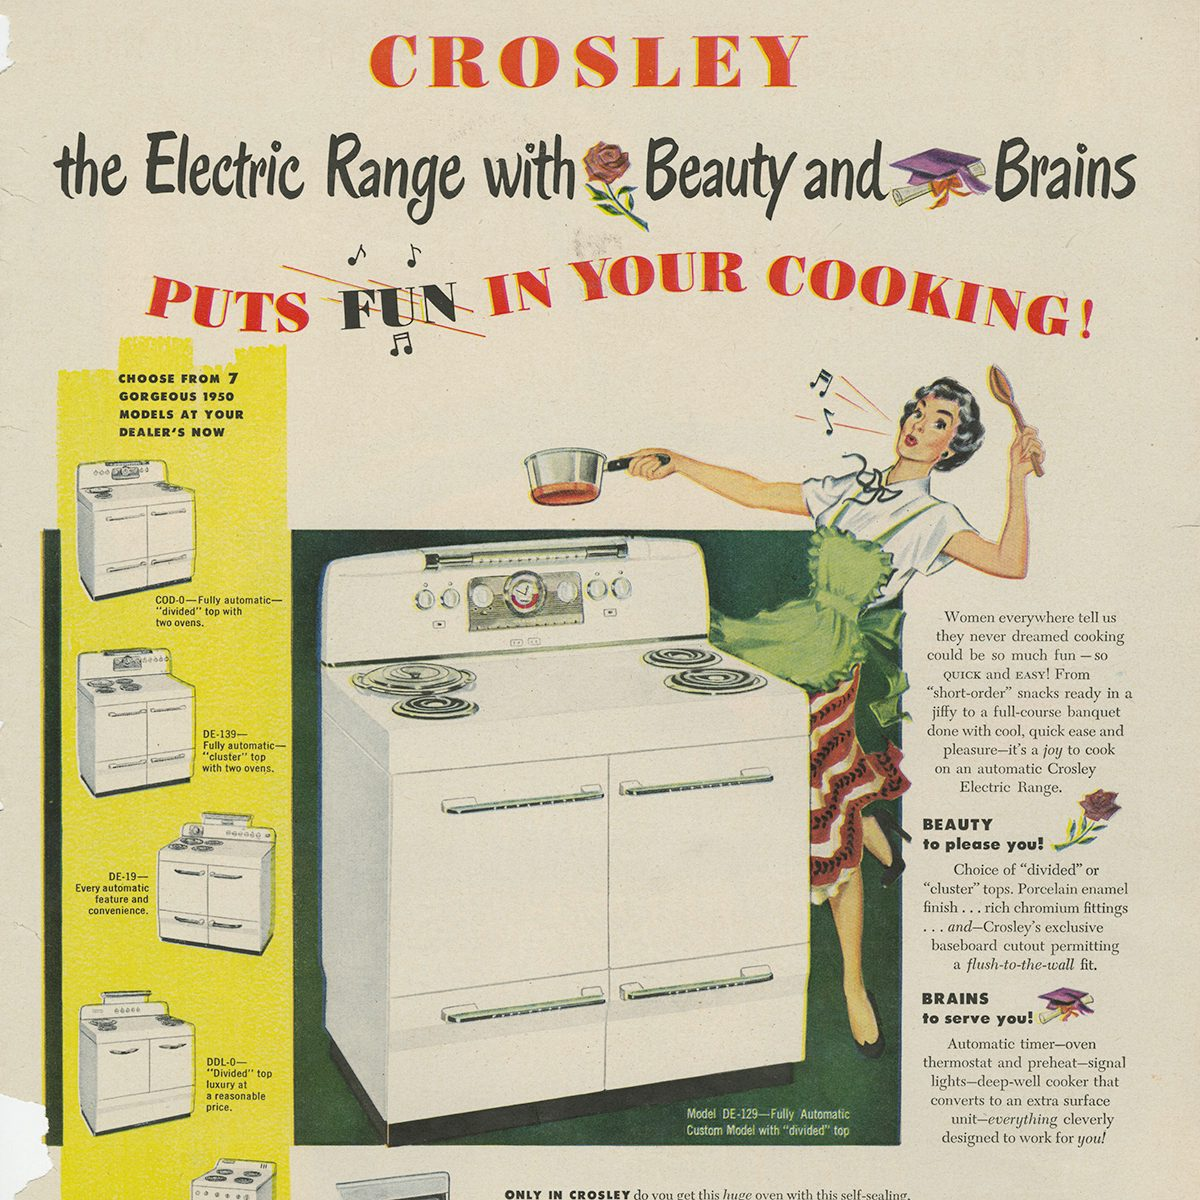 22 Retro Home Appliance Ads That Will Take You Back | Taste